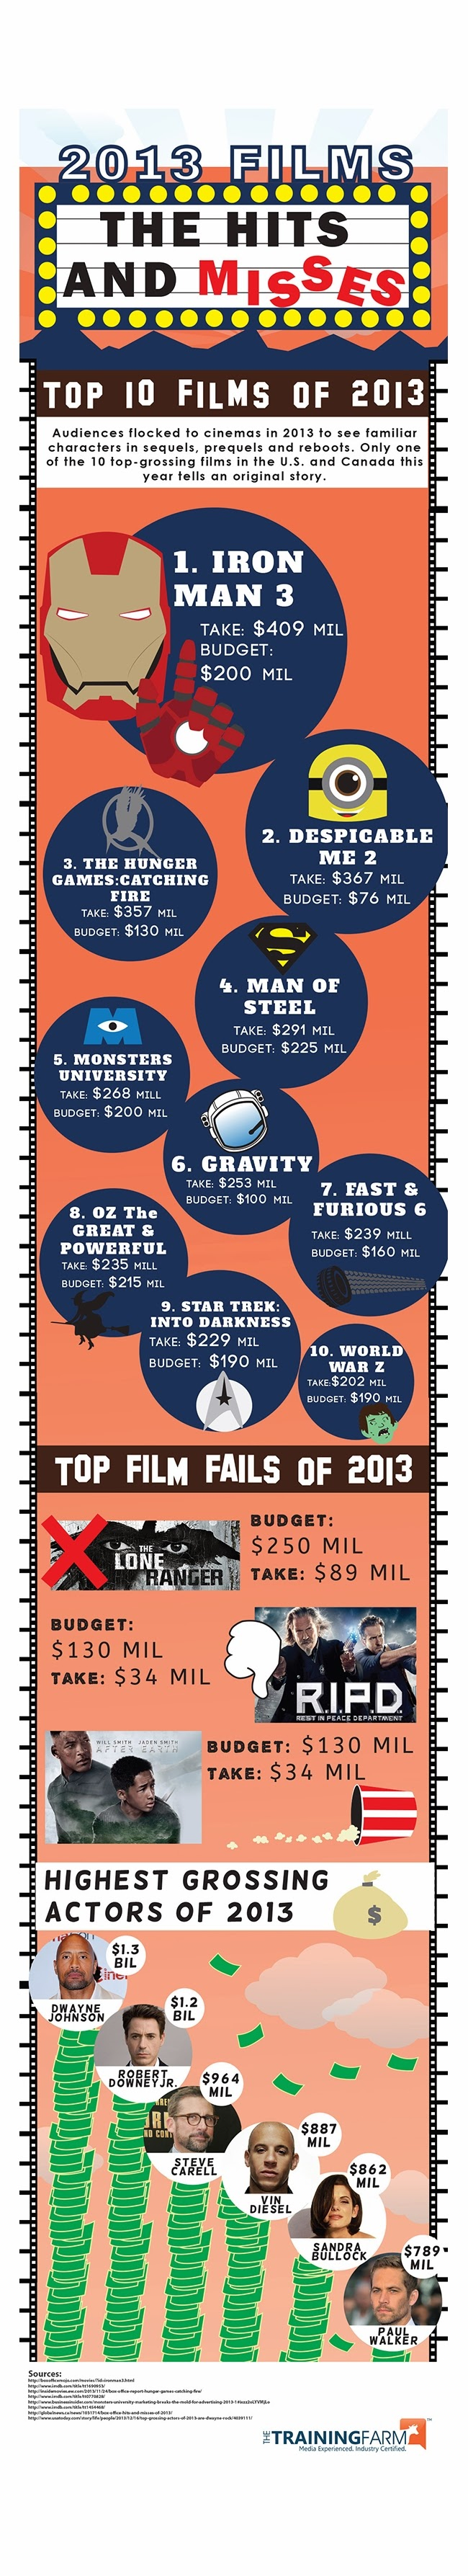 Worst Films and Best Films of 2013